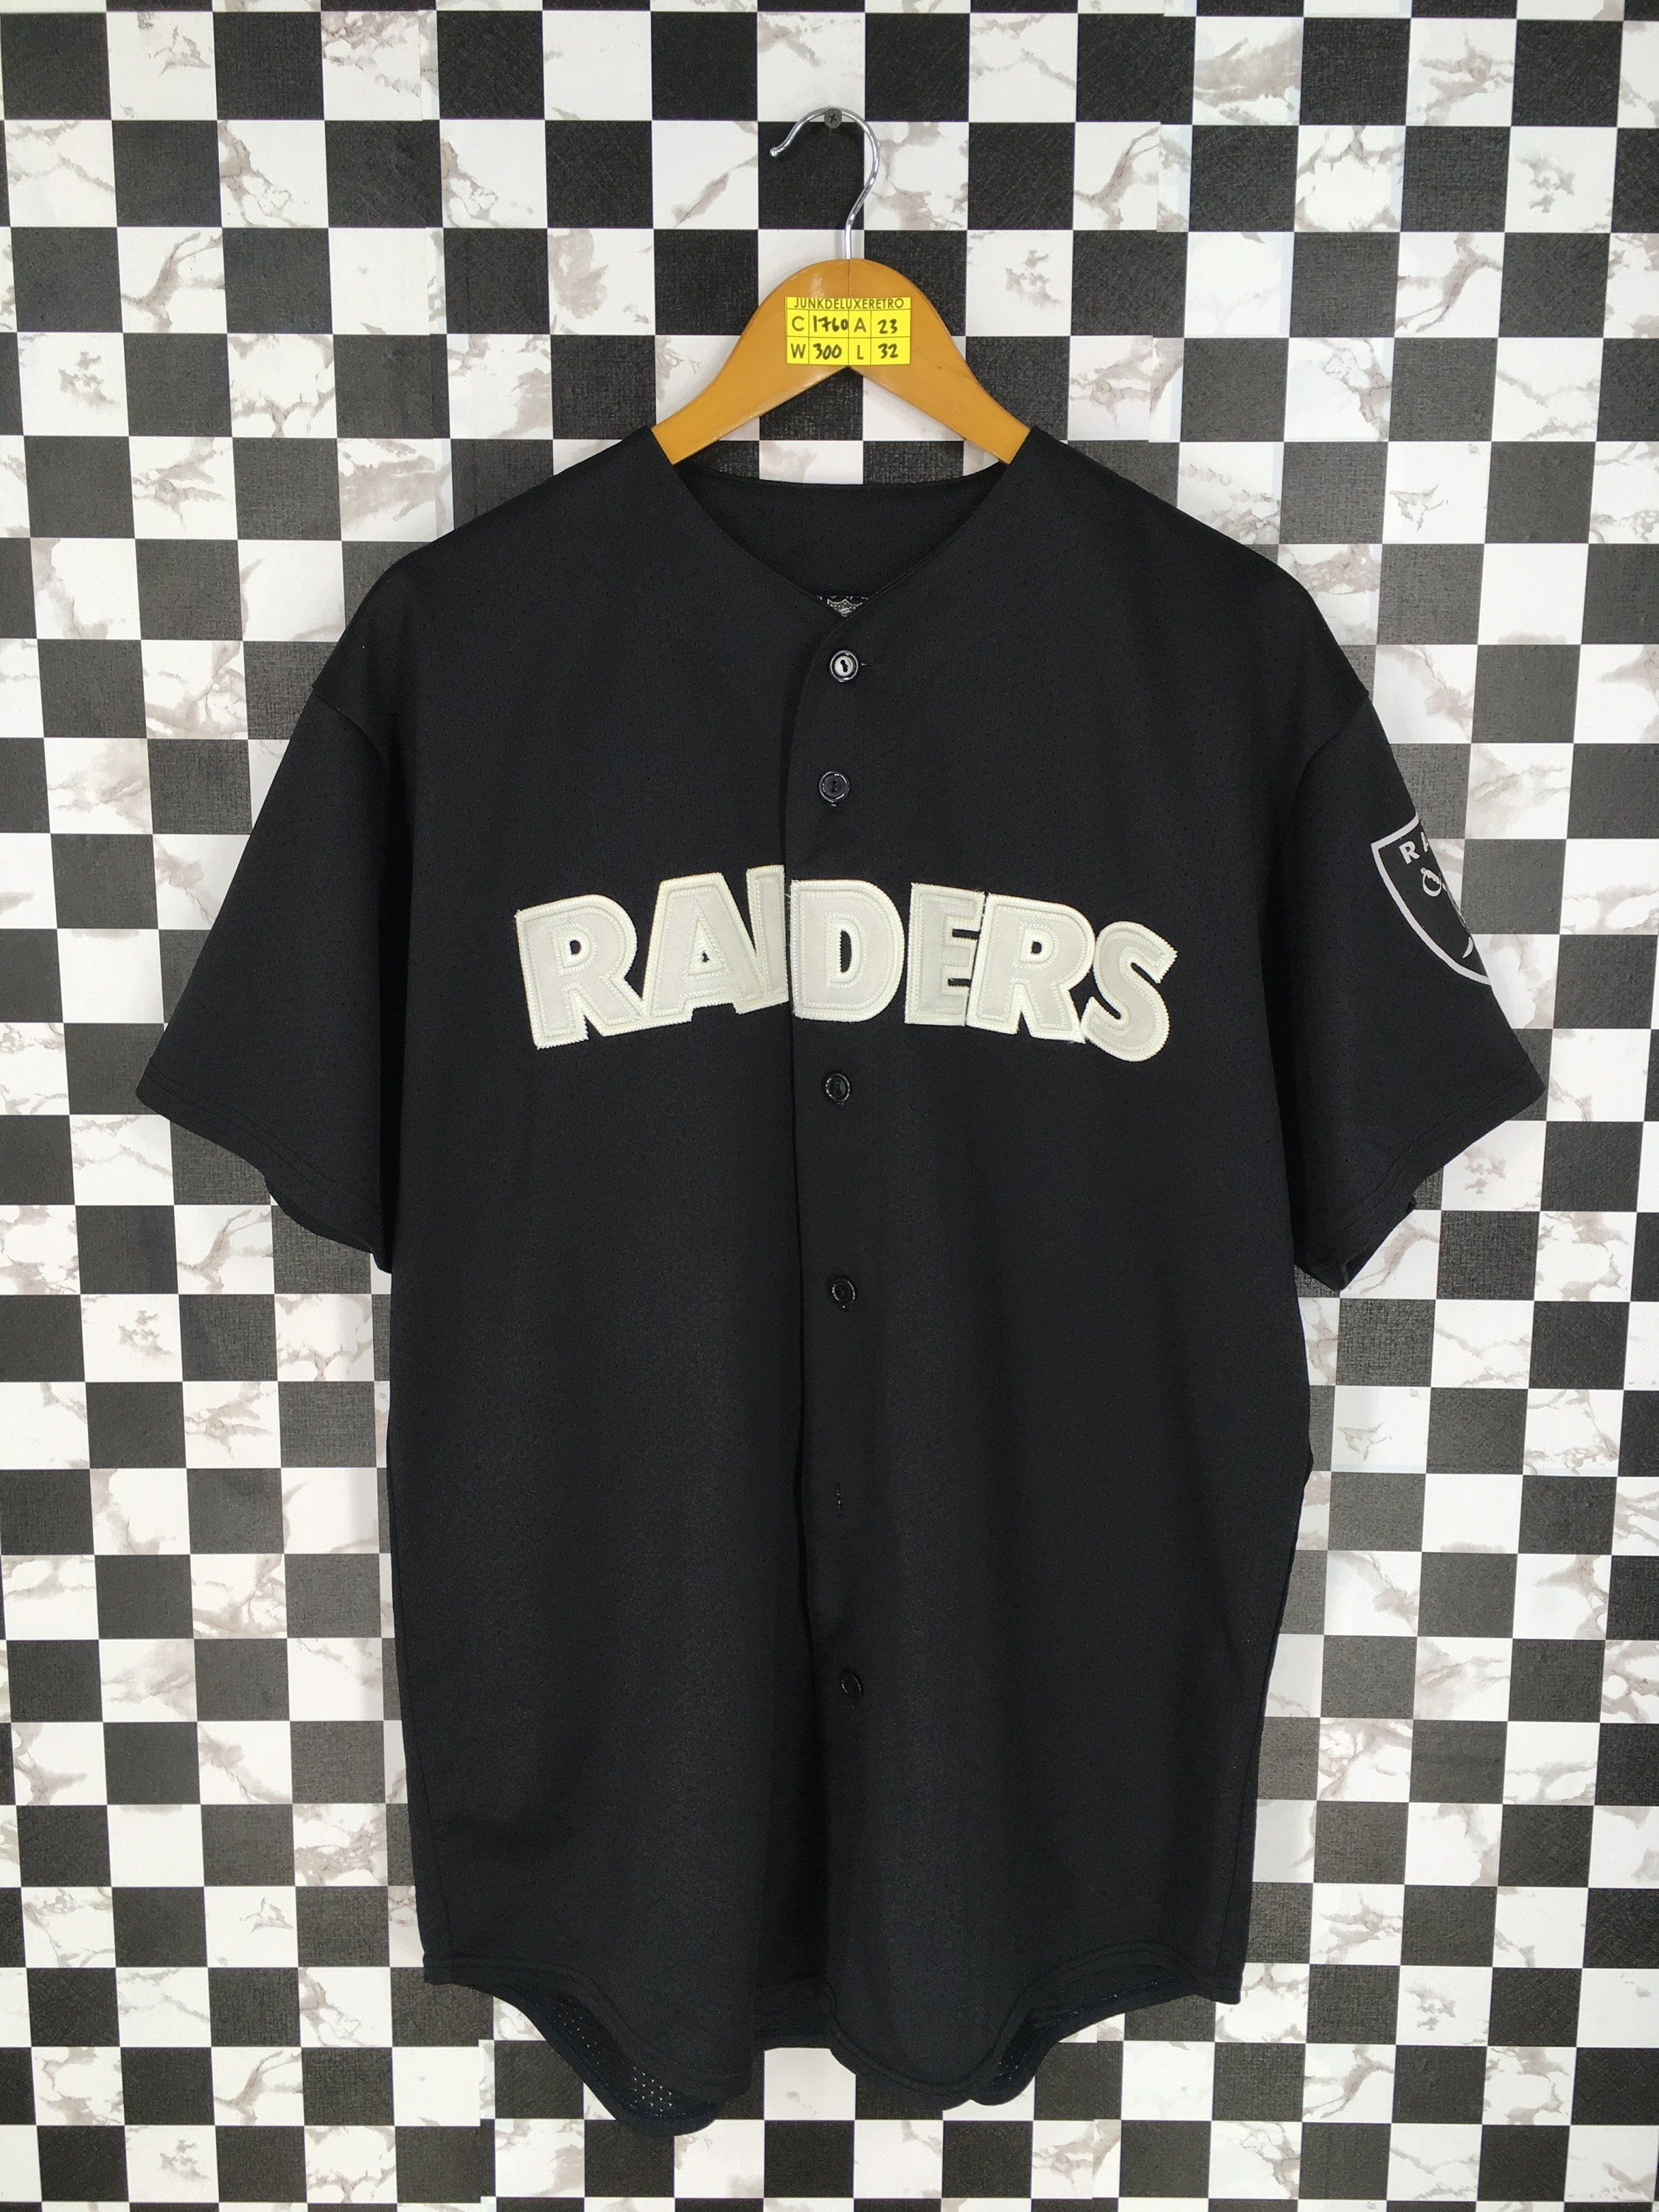 OAKLAND RAIDERS Shirt Button Up Large 80's Vintage Nfl